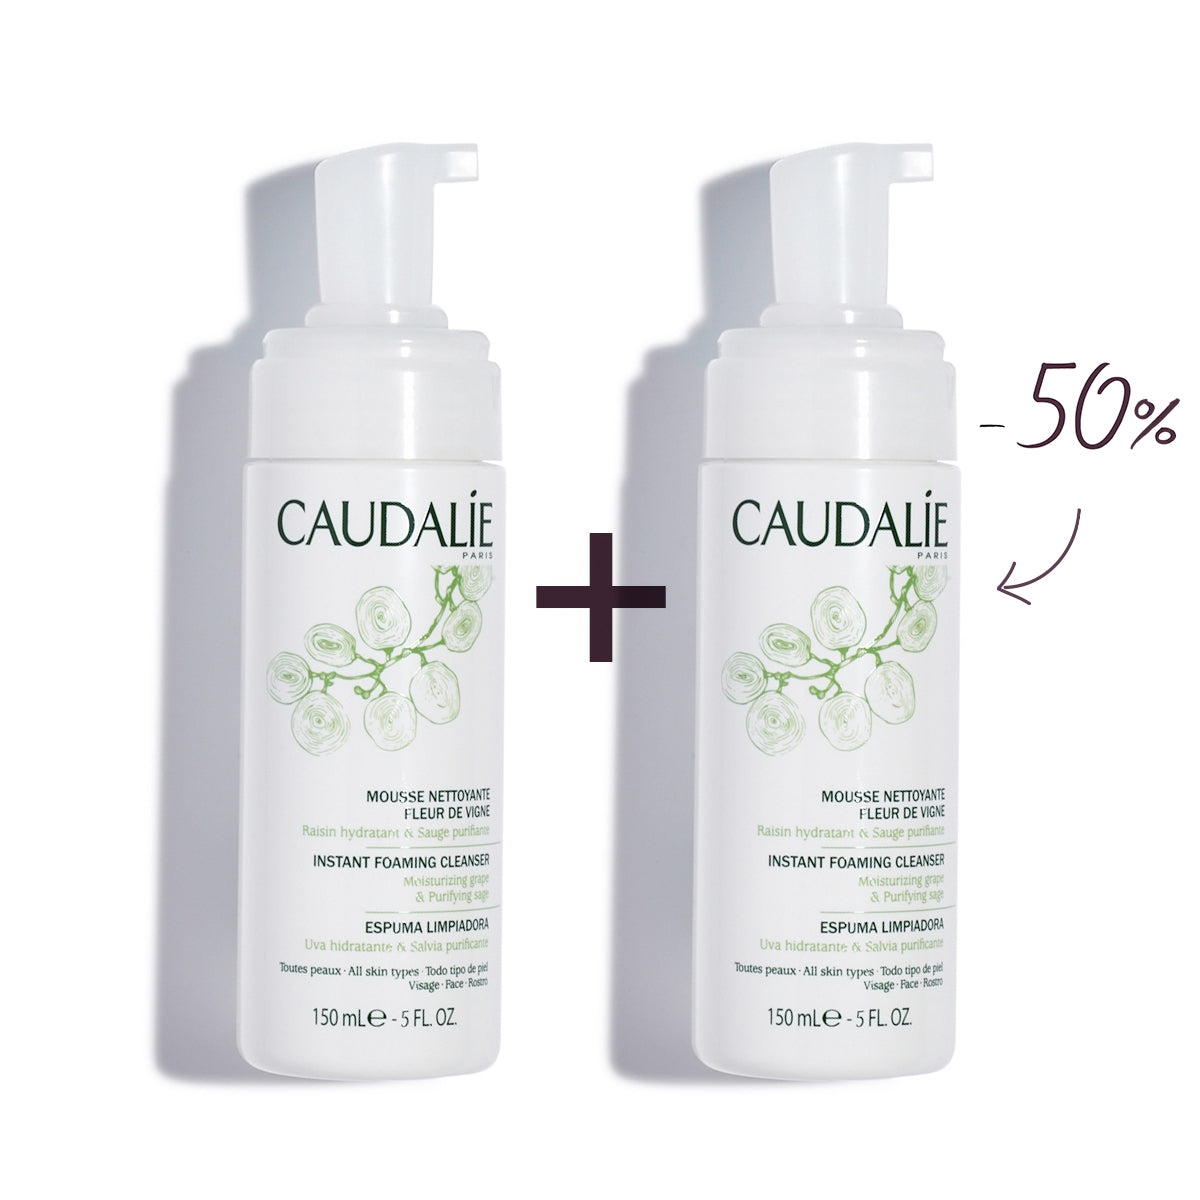 CAUDALIE Instant Foaming cleanser DUO 150ml x2